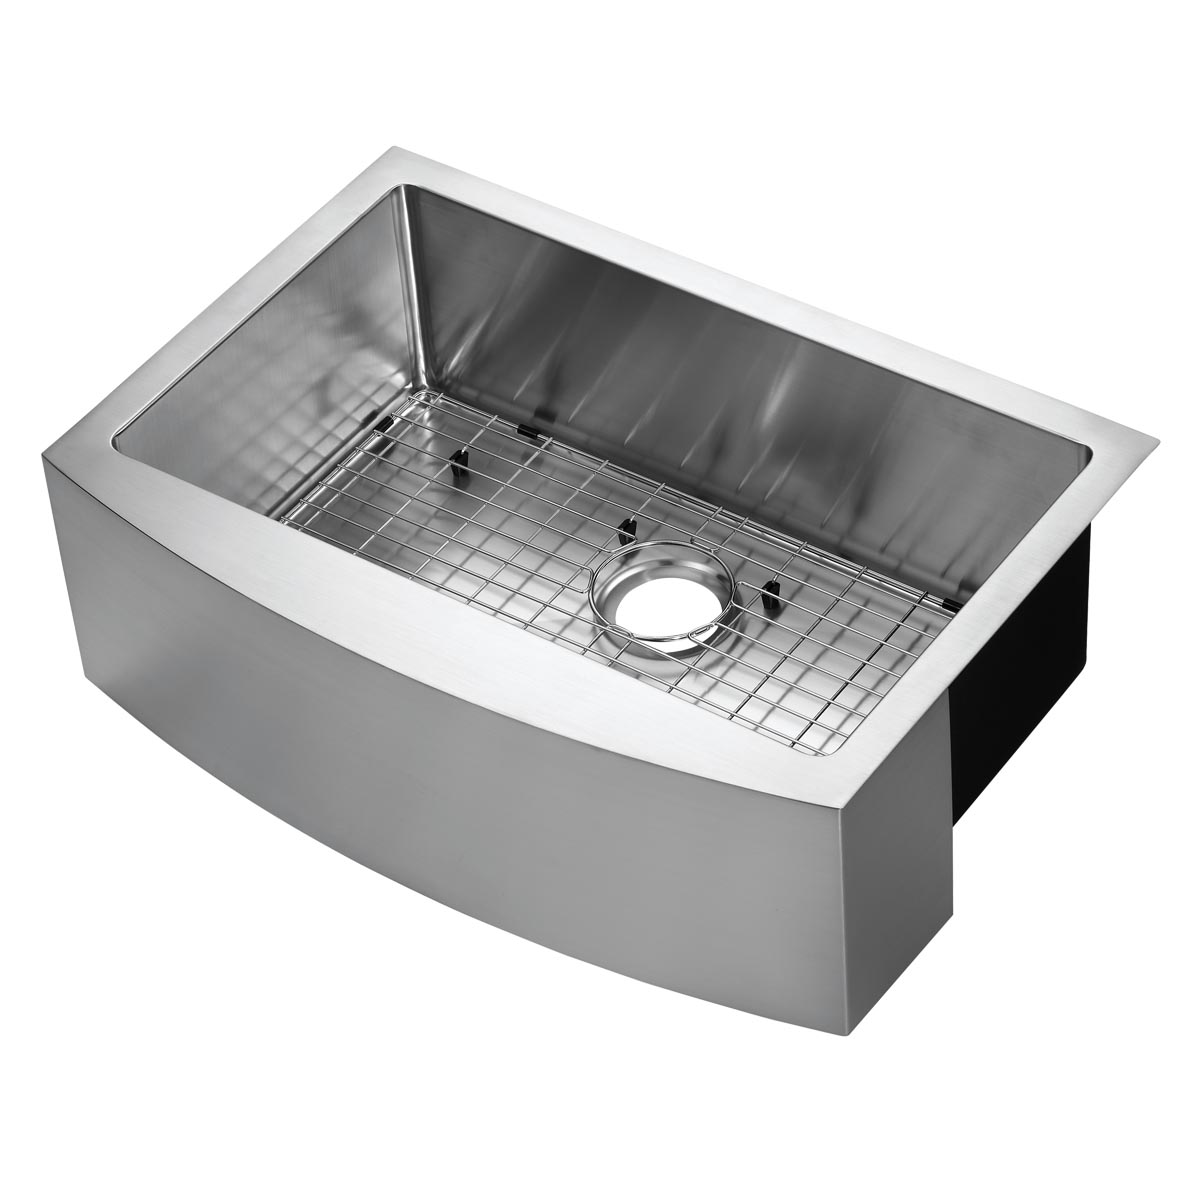 30 x 21 stainless steel farm sink curved apron front